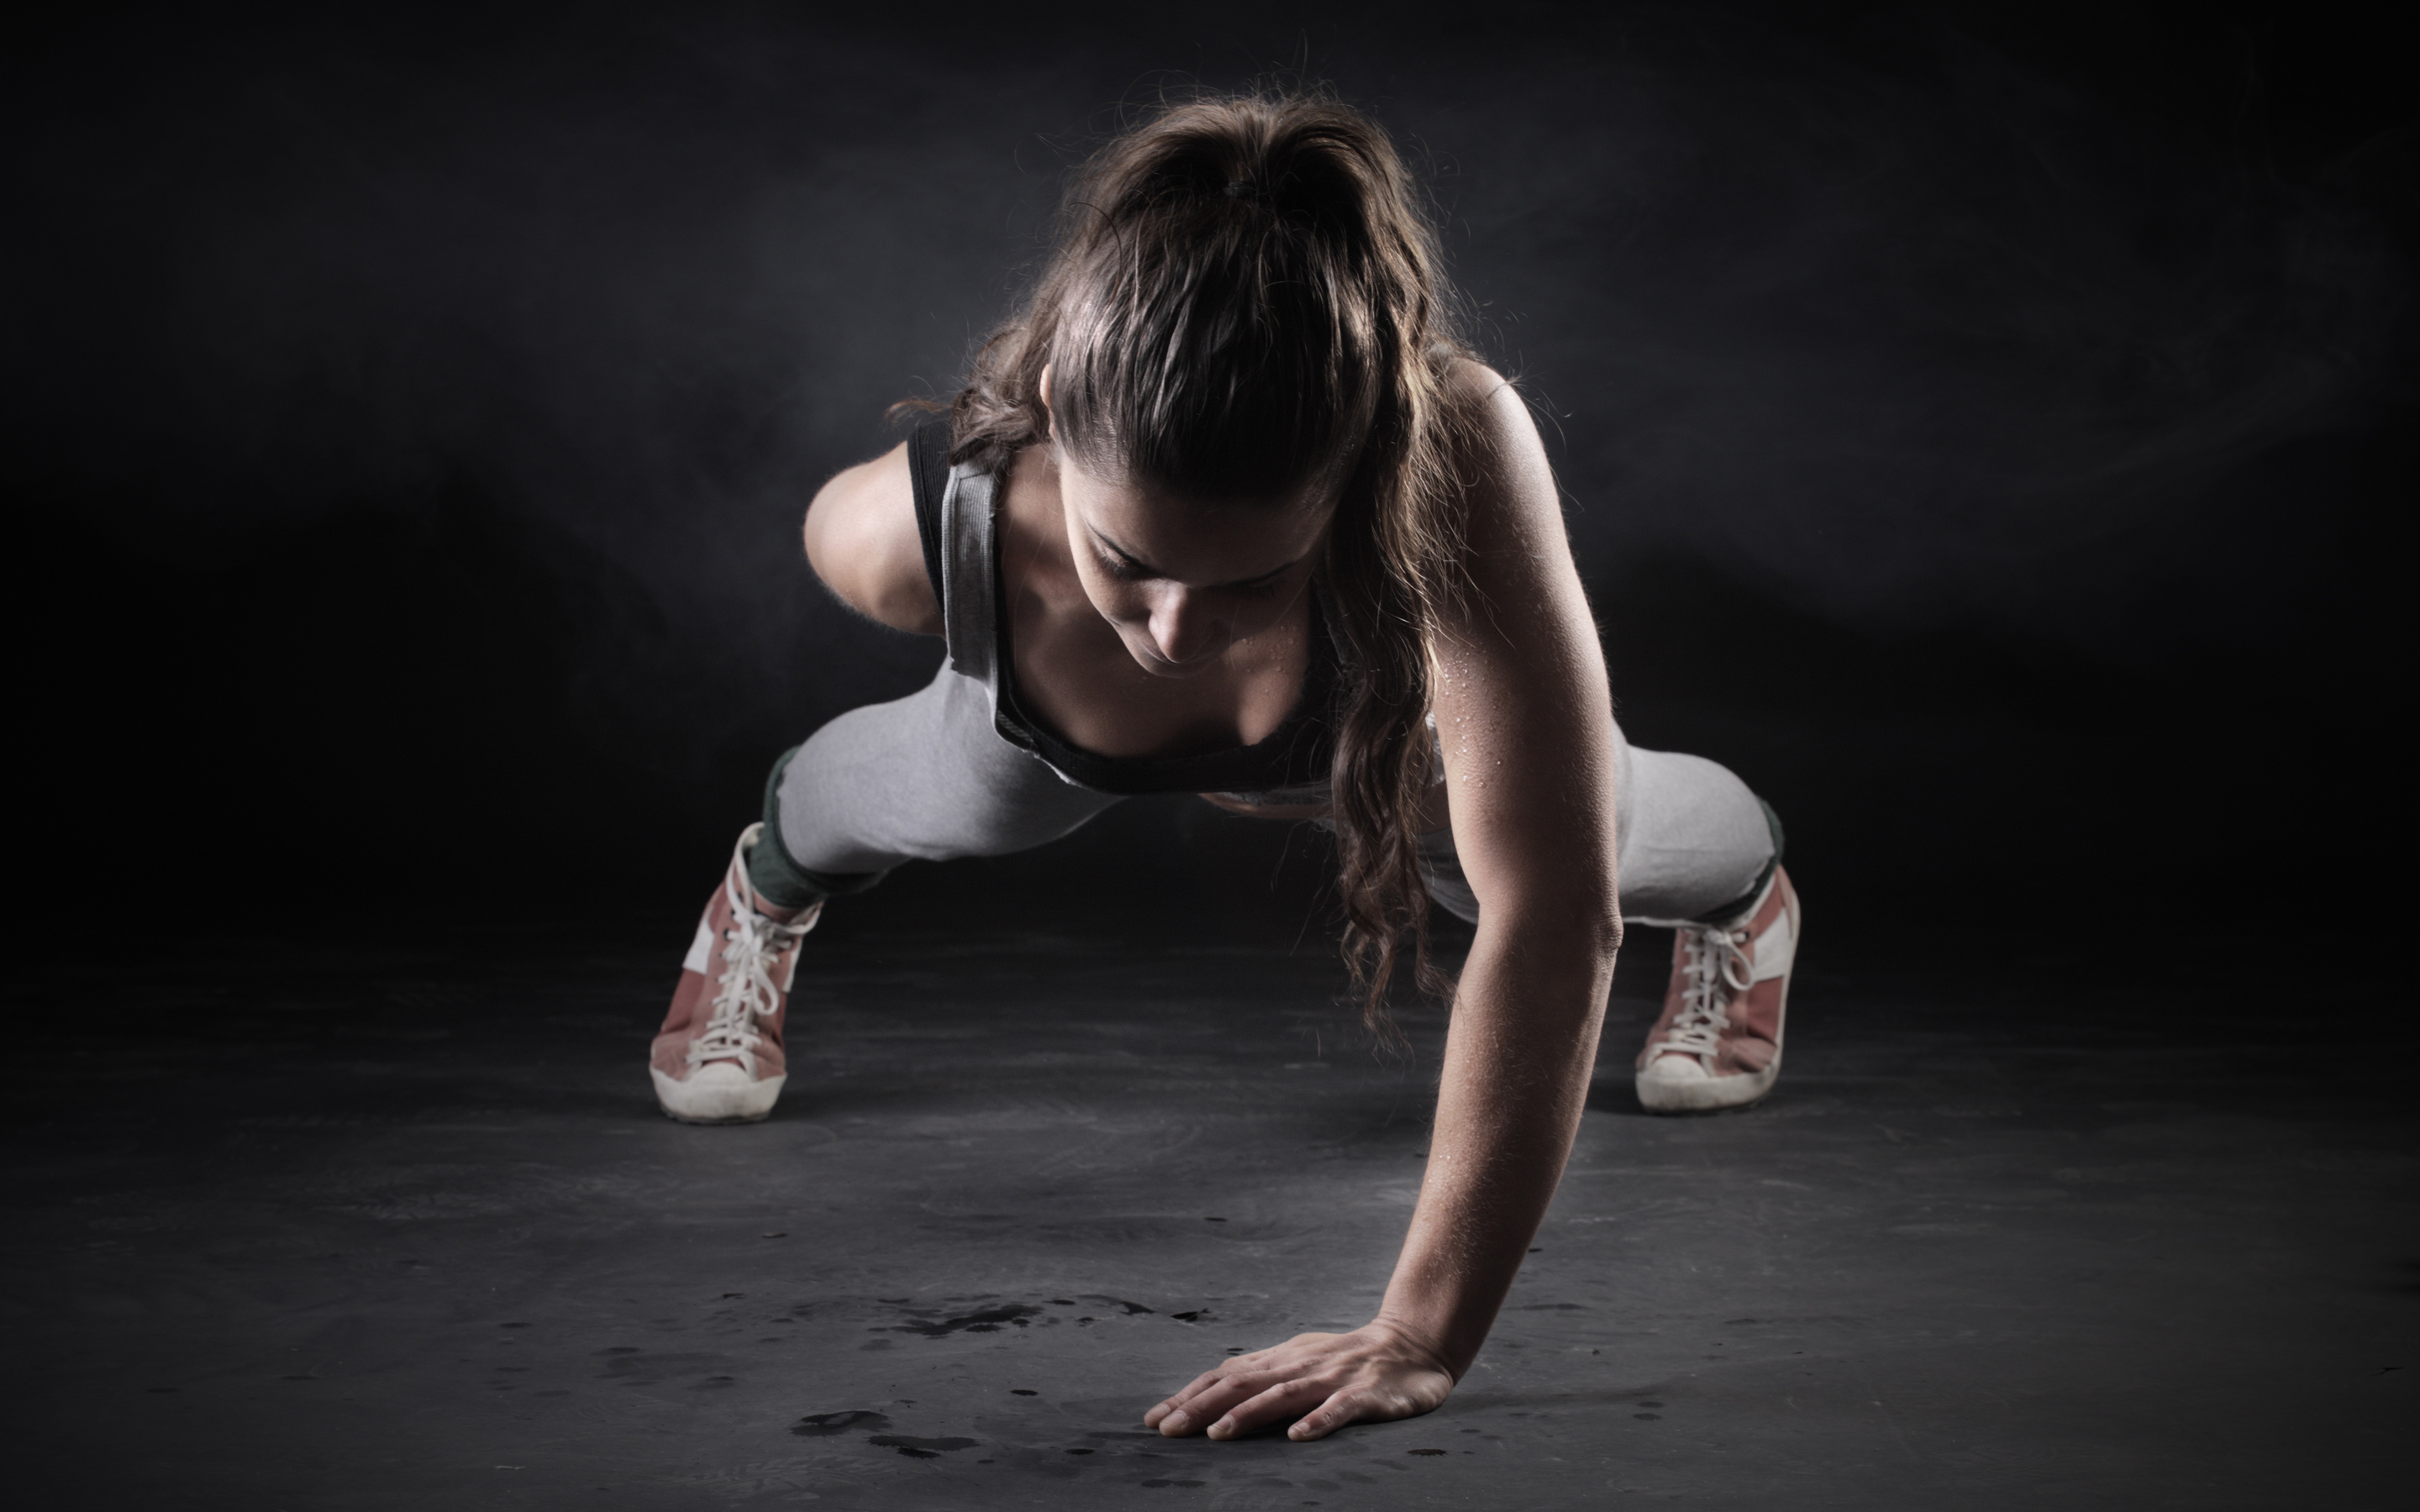 Fitness Girl One Hand Push Up HD Wallpaper 2880x1800